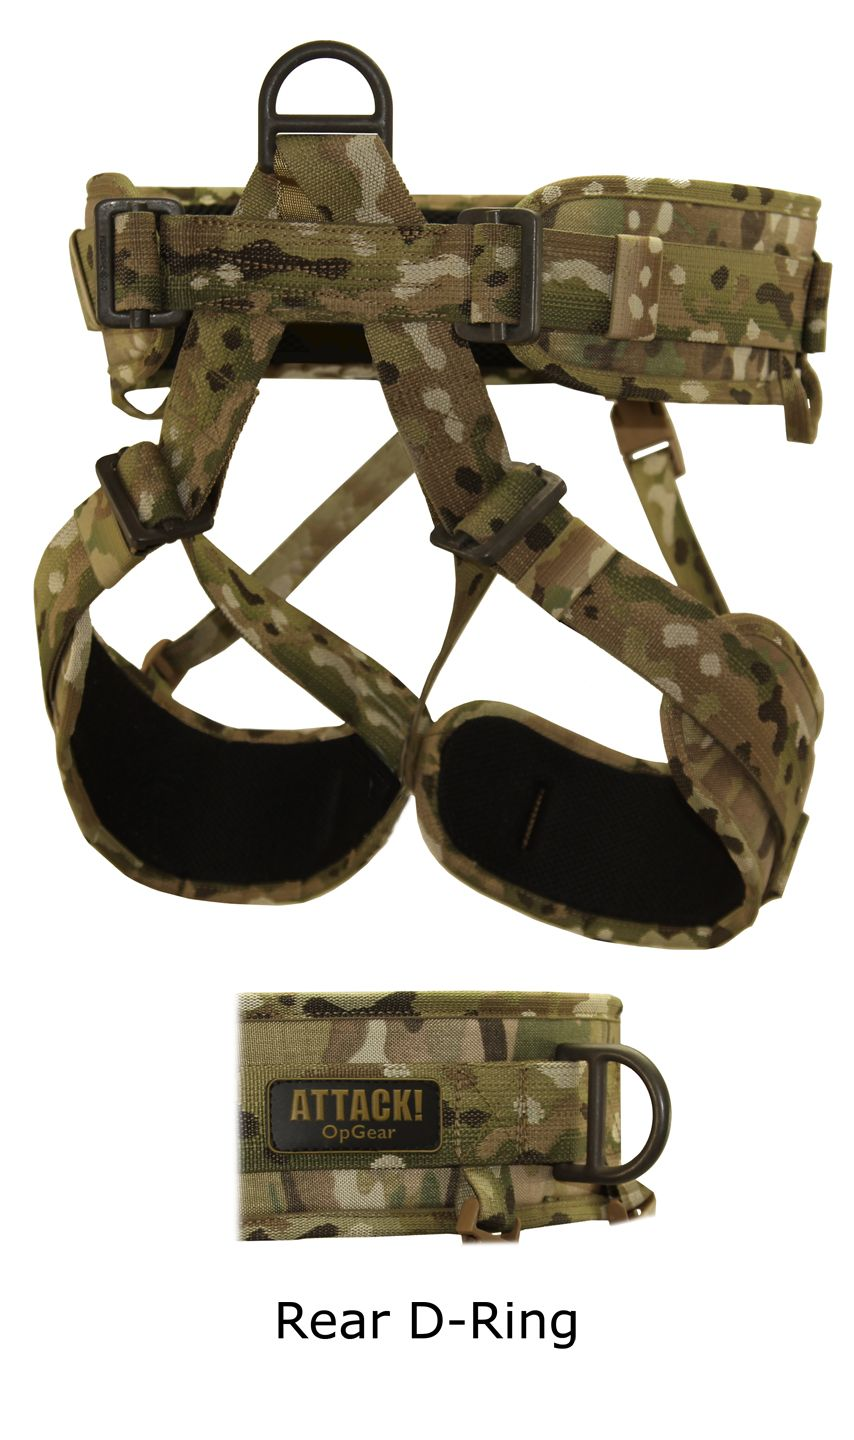 ATTACK! PADDED RAIDER RAPPELLING HARNESS Military gear